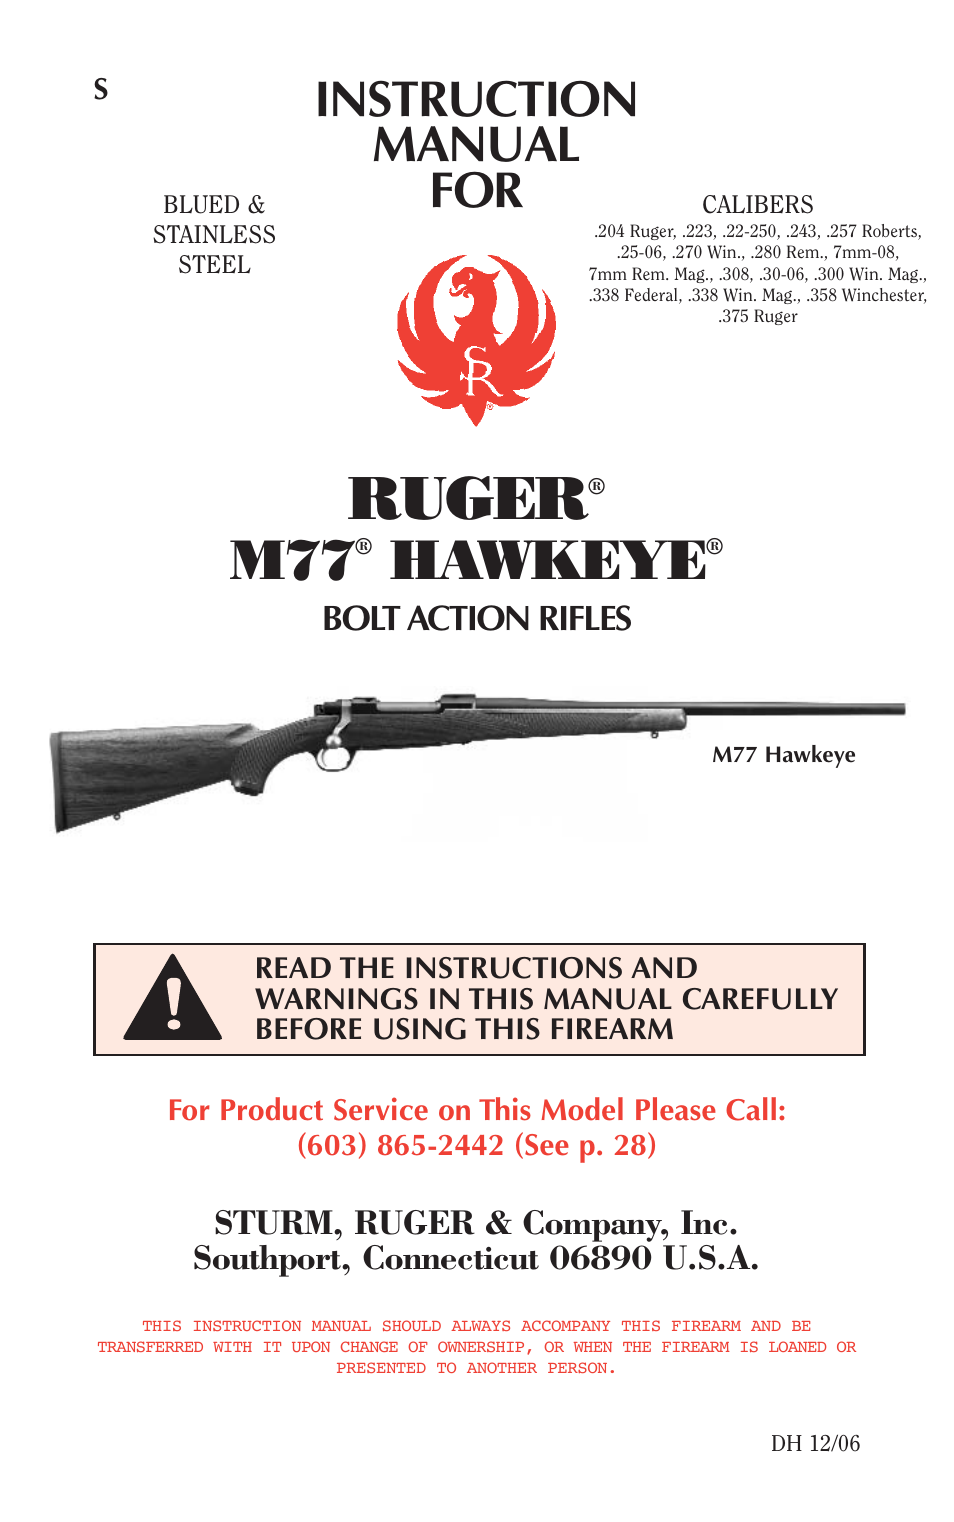 ruger m77 user manual 42 pages rh manualsdir com Ruger M77 Hawkeye All Weather Ruger M77 Hawkeye All Weather